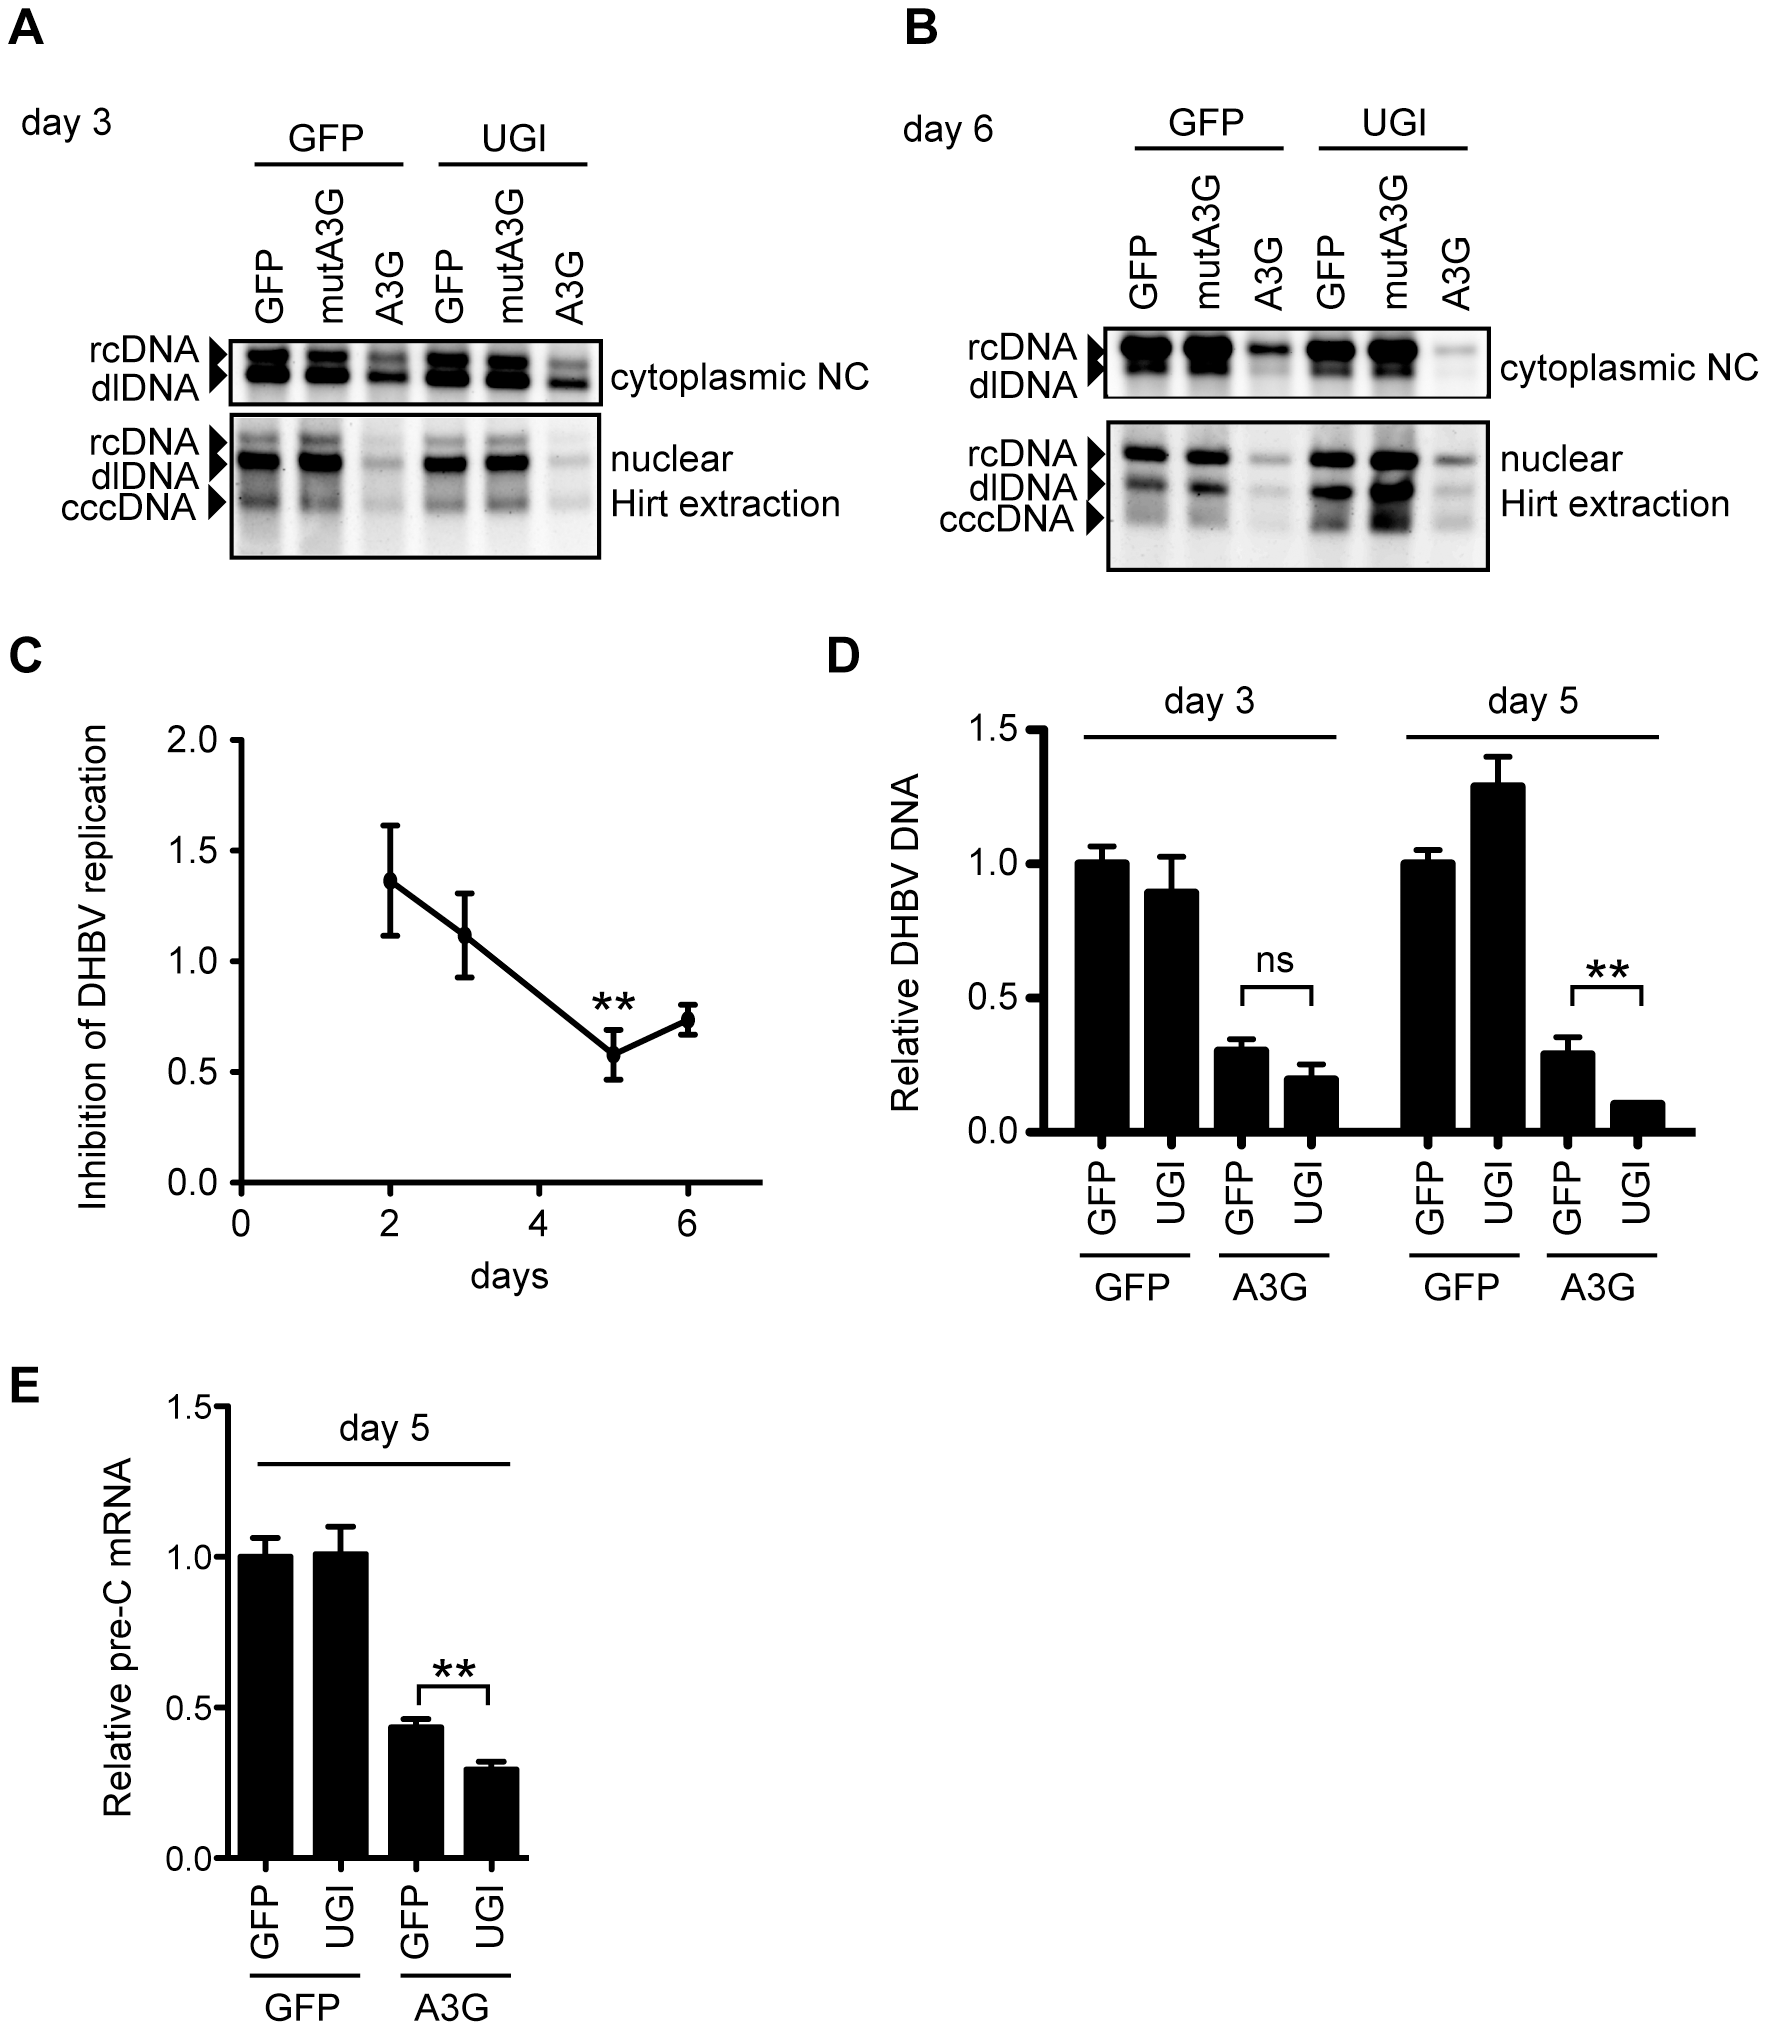 UNG inhibition affects DHBV replication during 6 days of culture.